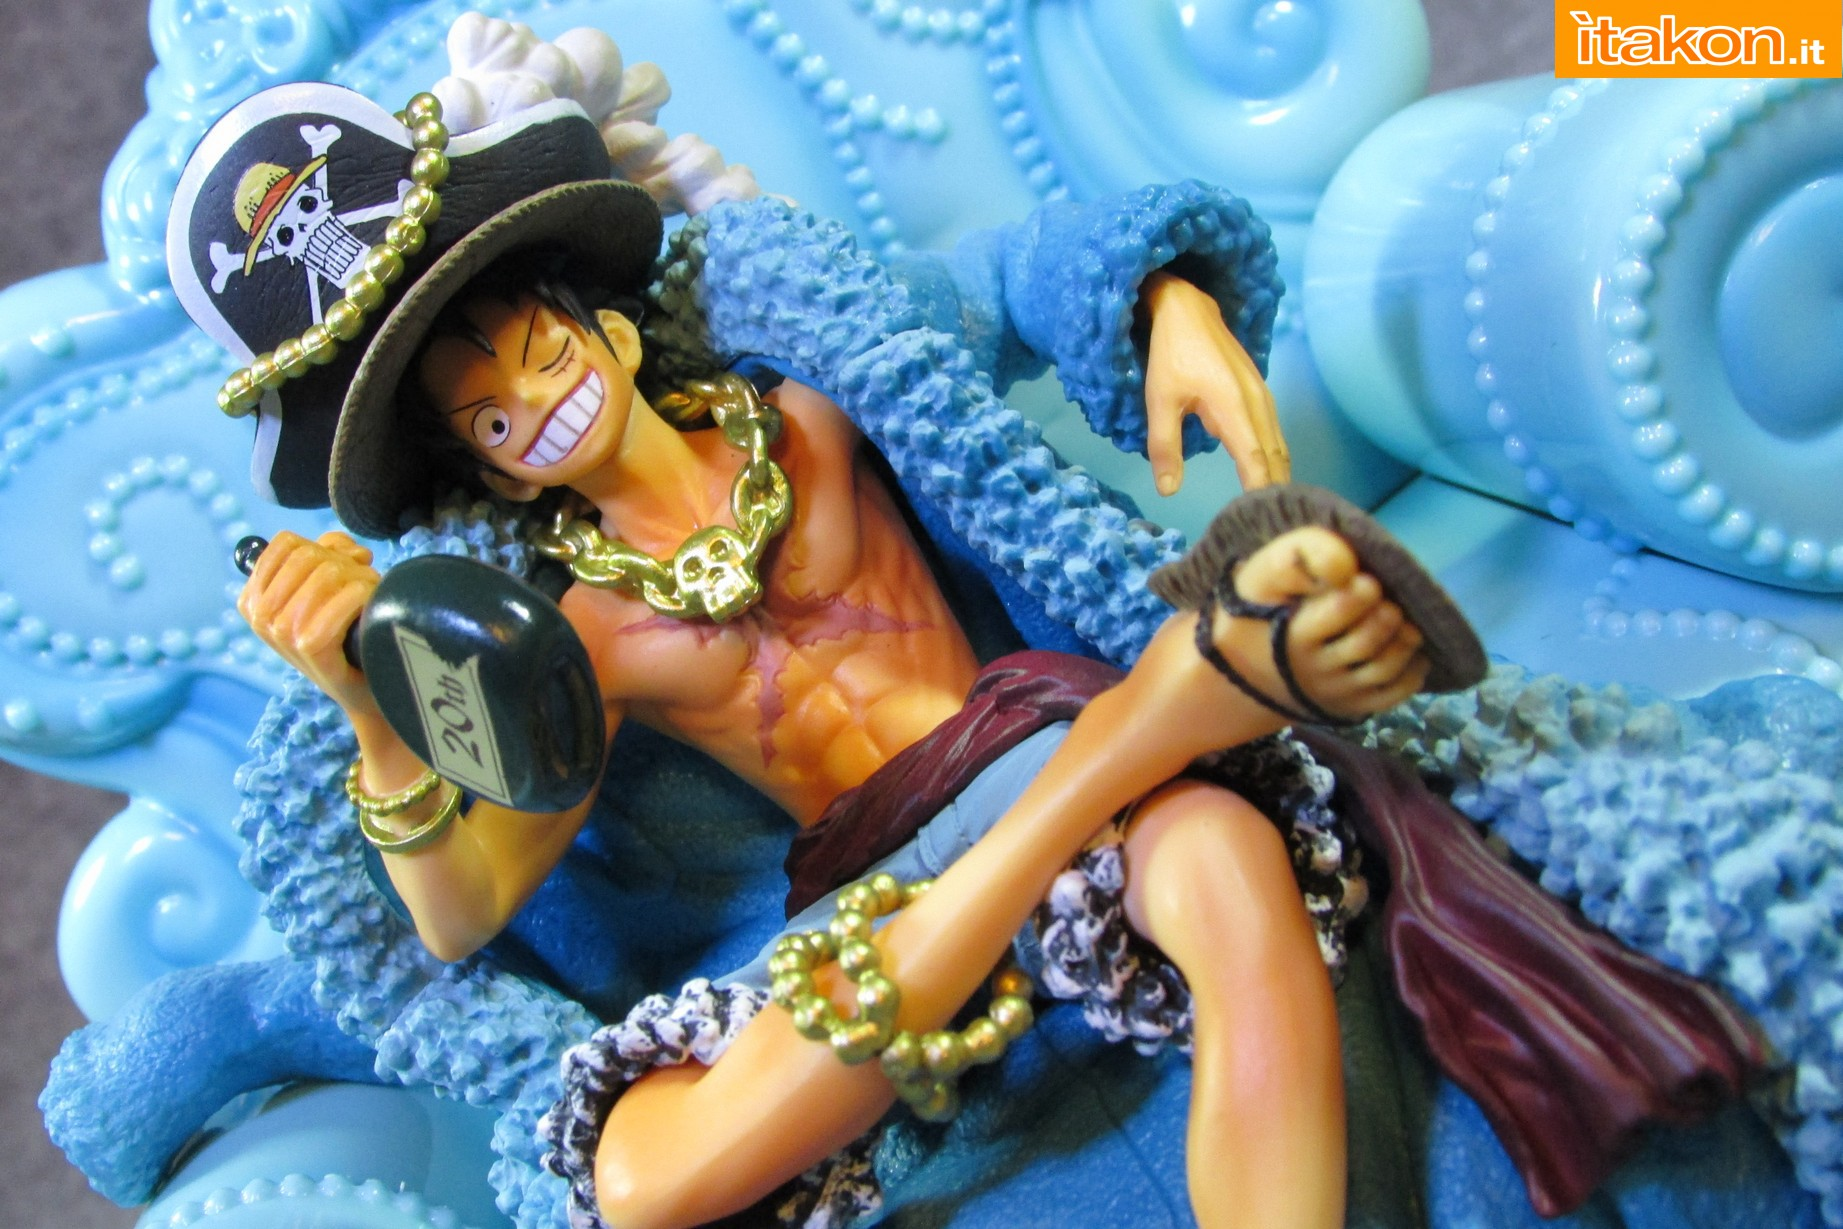 Link a Recensione Review Monkey D. Luffy One Piece 20th Anniversary ver. Figuarts ZERO di Bandai 37